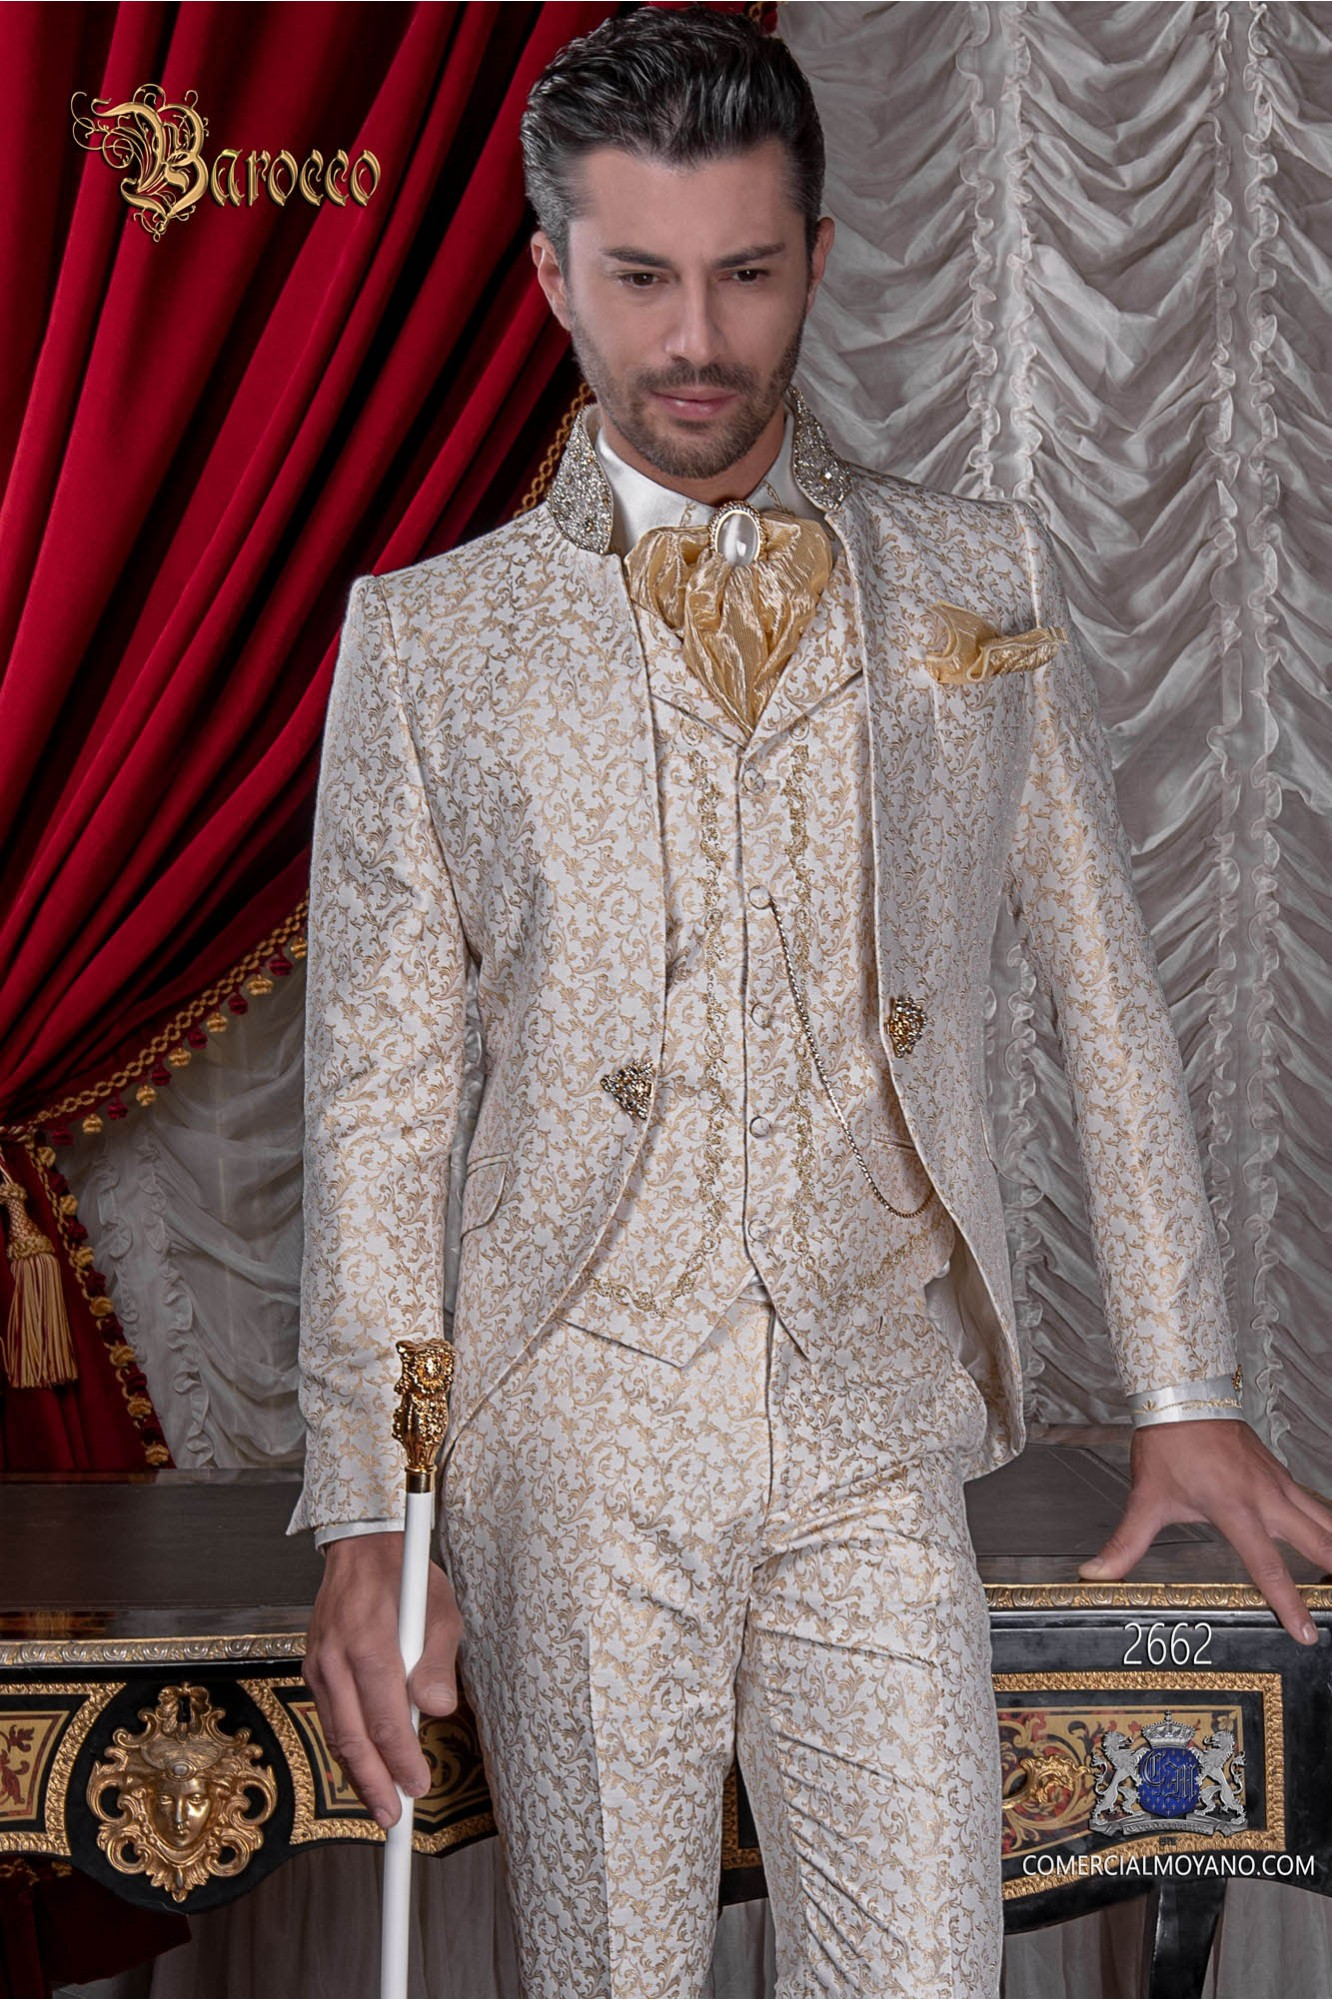 Ivory and gold brocade baroque frock coat with golden crystal rhinestones on Mao collar